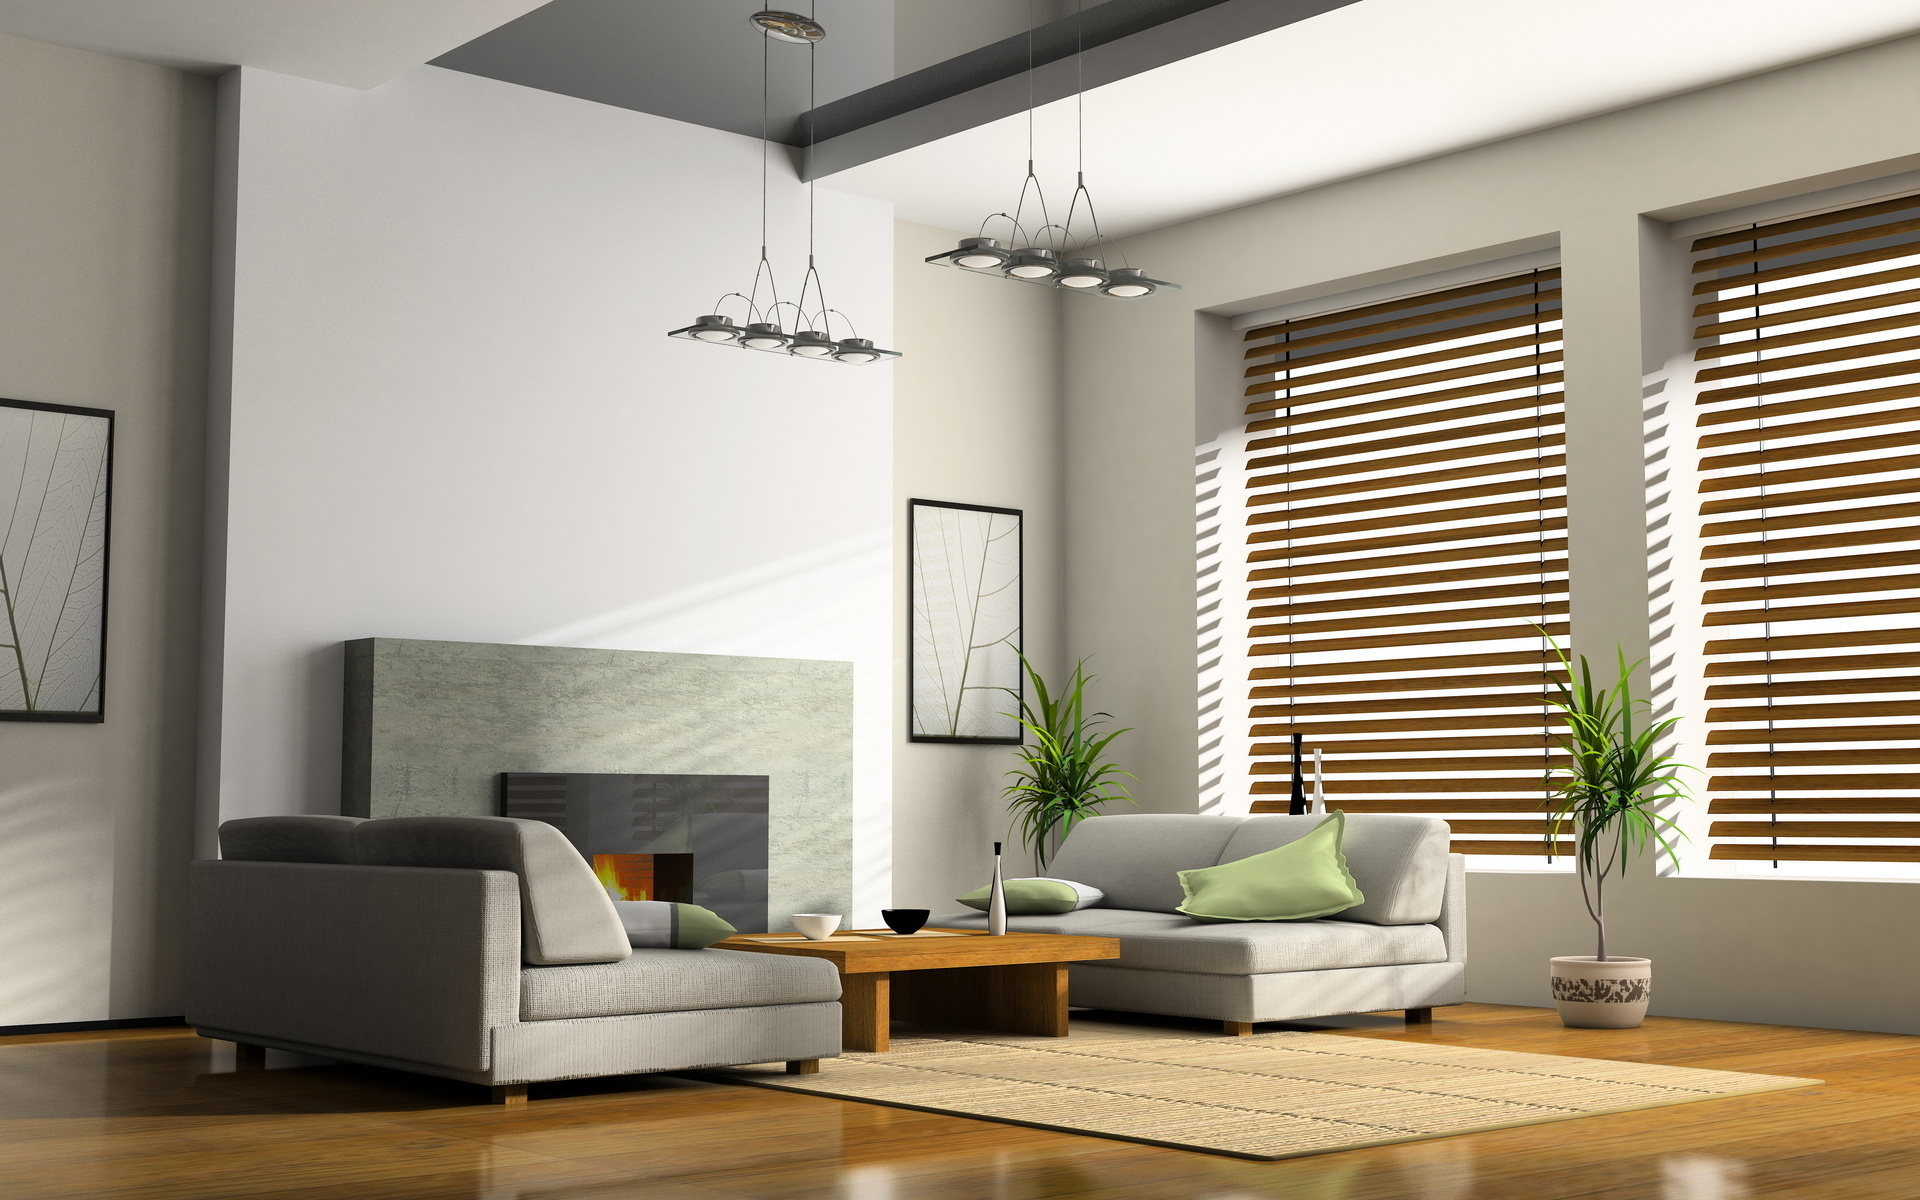 3d interior design desktop wallpaper 60899 1920x1200 px for Interior decoration wallpaper design